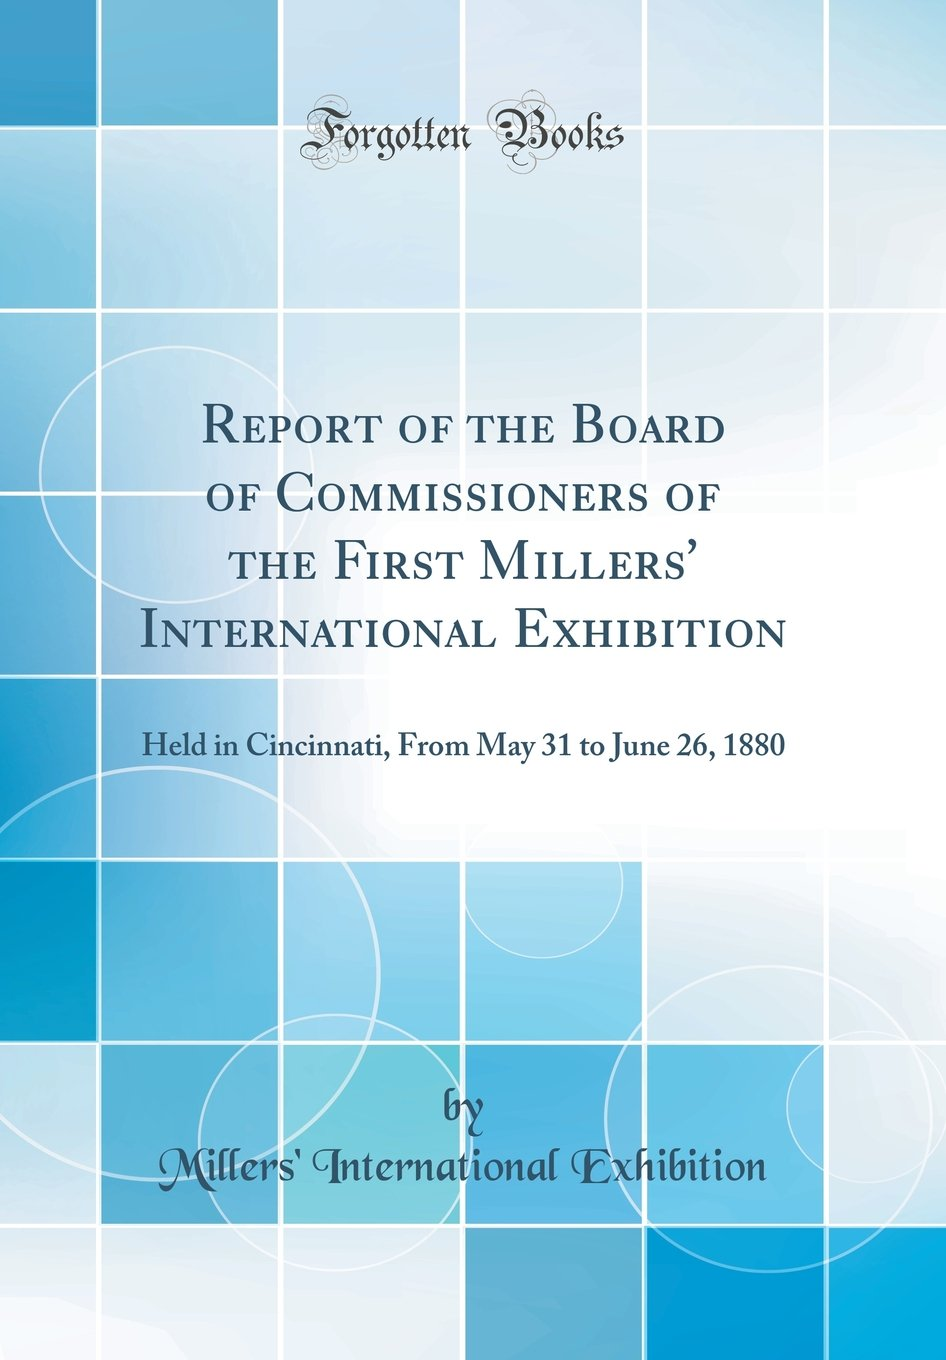 Report of the Board of Commissioners of the First Millers' International Exhibition: Held in Cincinnati, From May 31 to June 26, 1880 (Classic Reprint) pdf